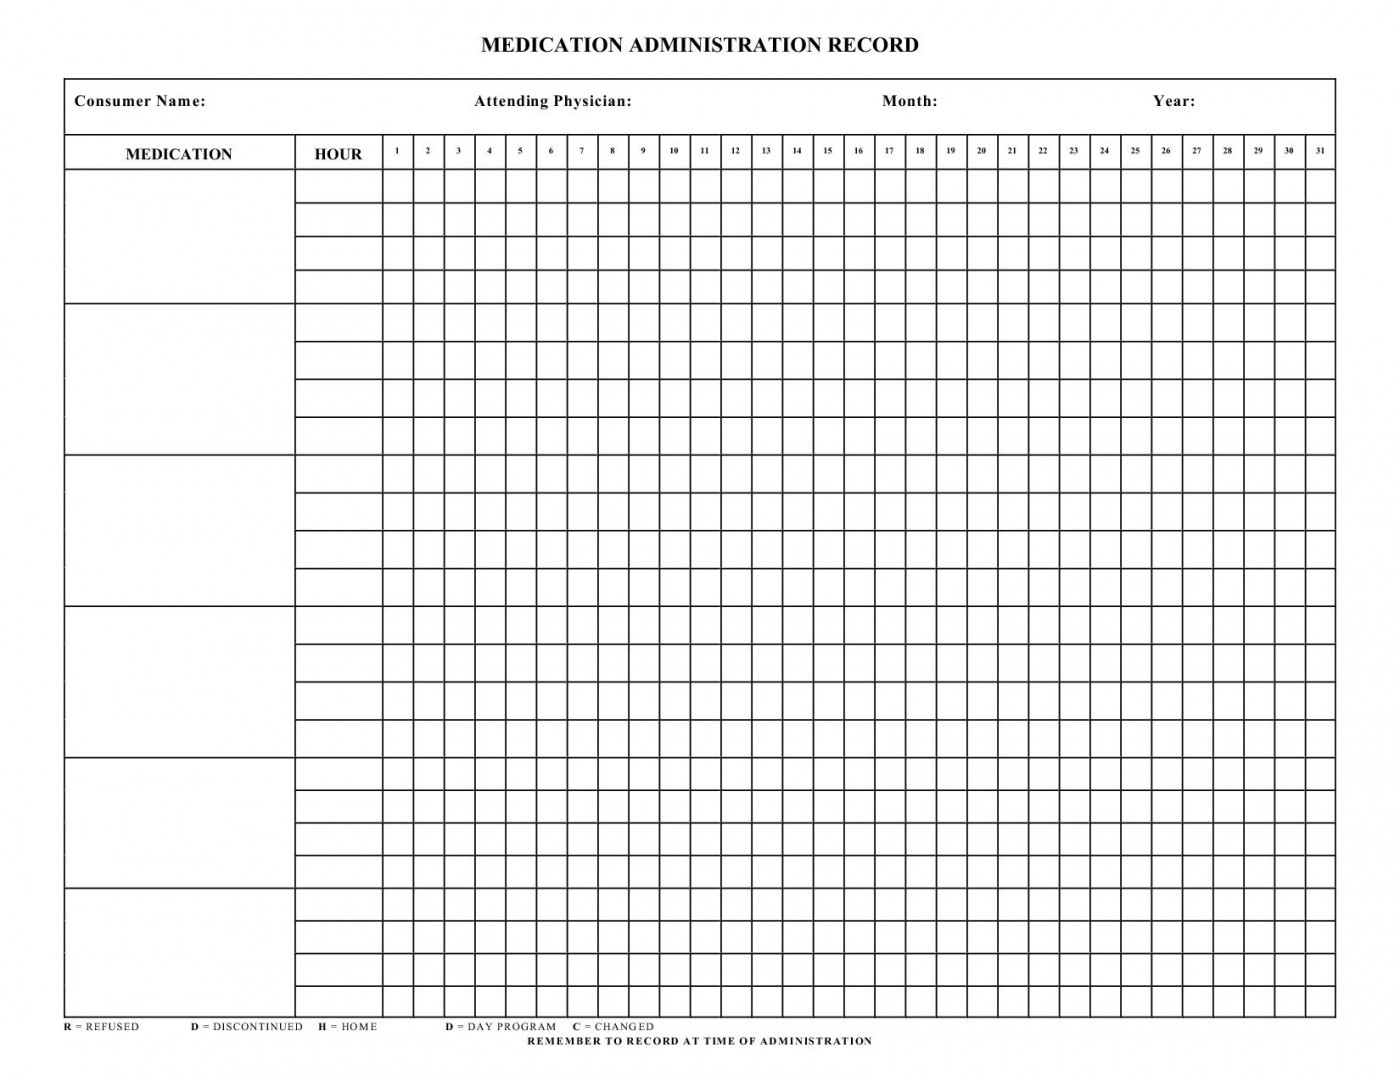 004 Dreaded Medication Administration Record Template Pdf High Resolution  Free Simple1400